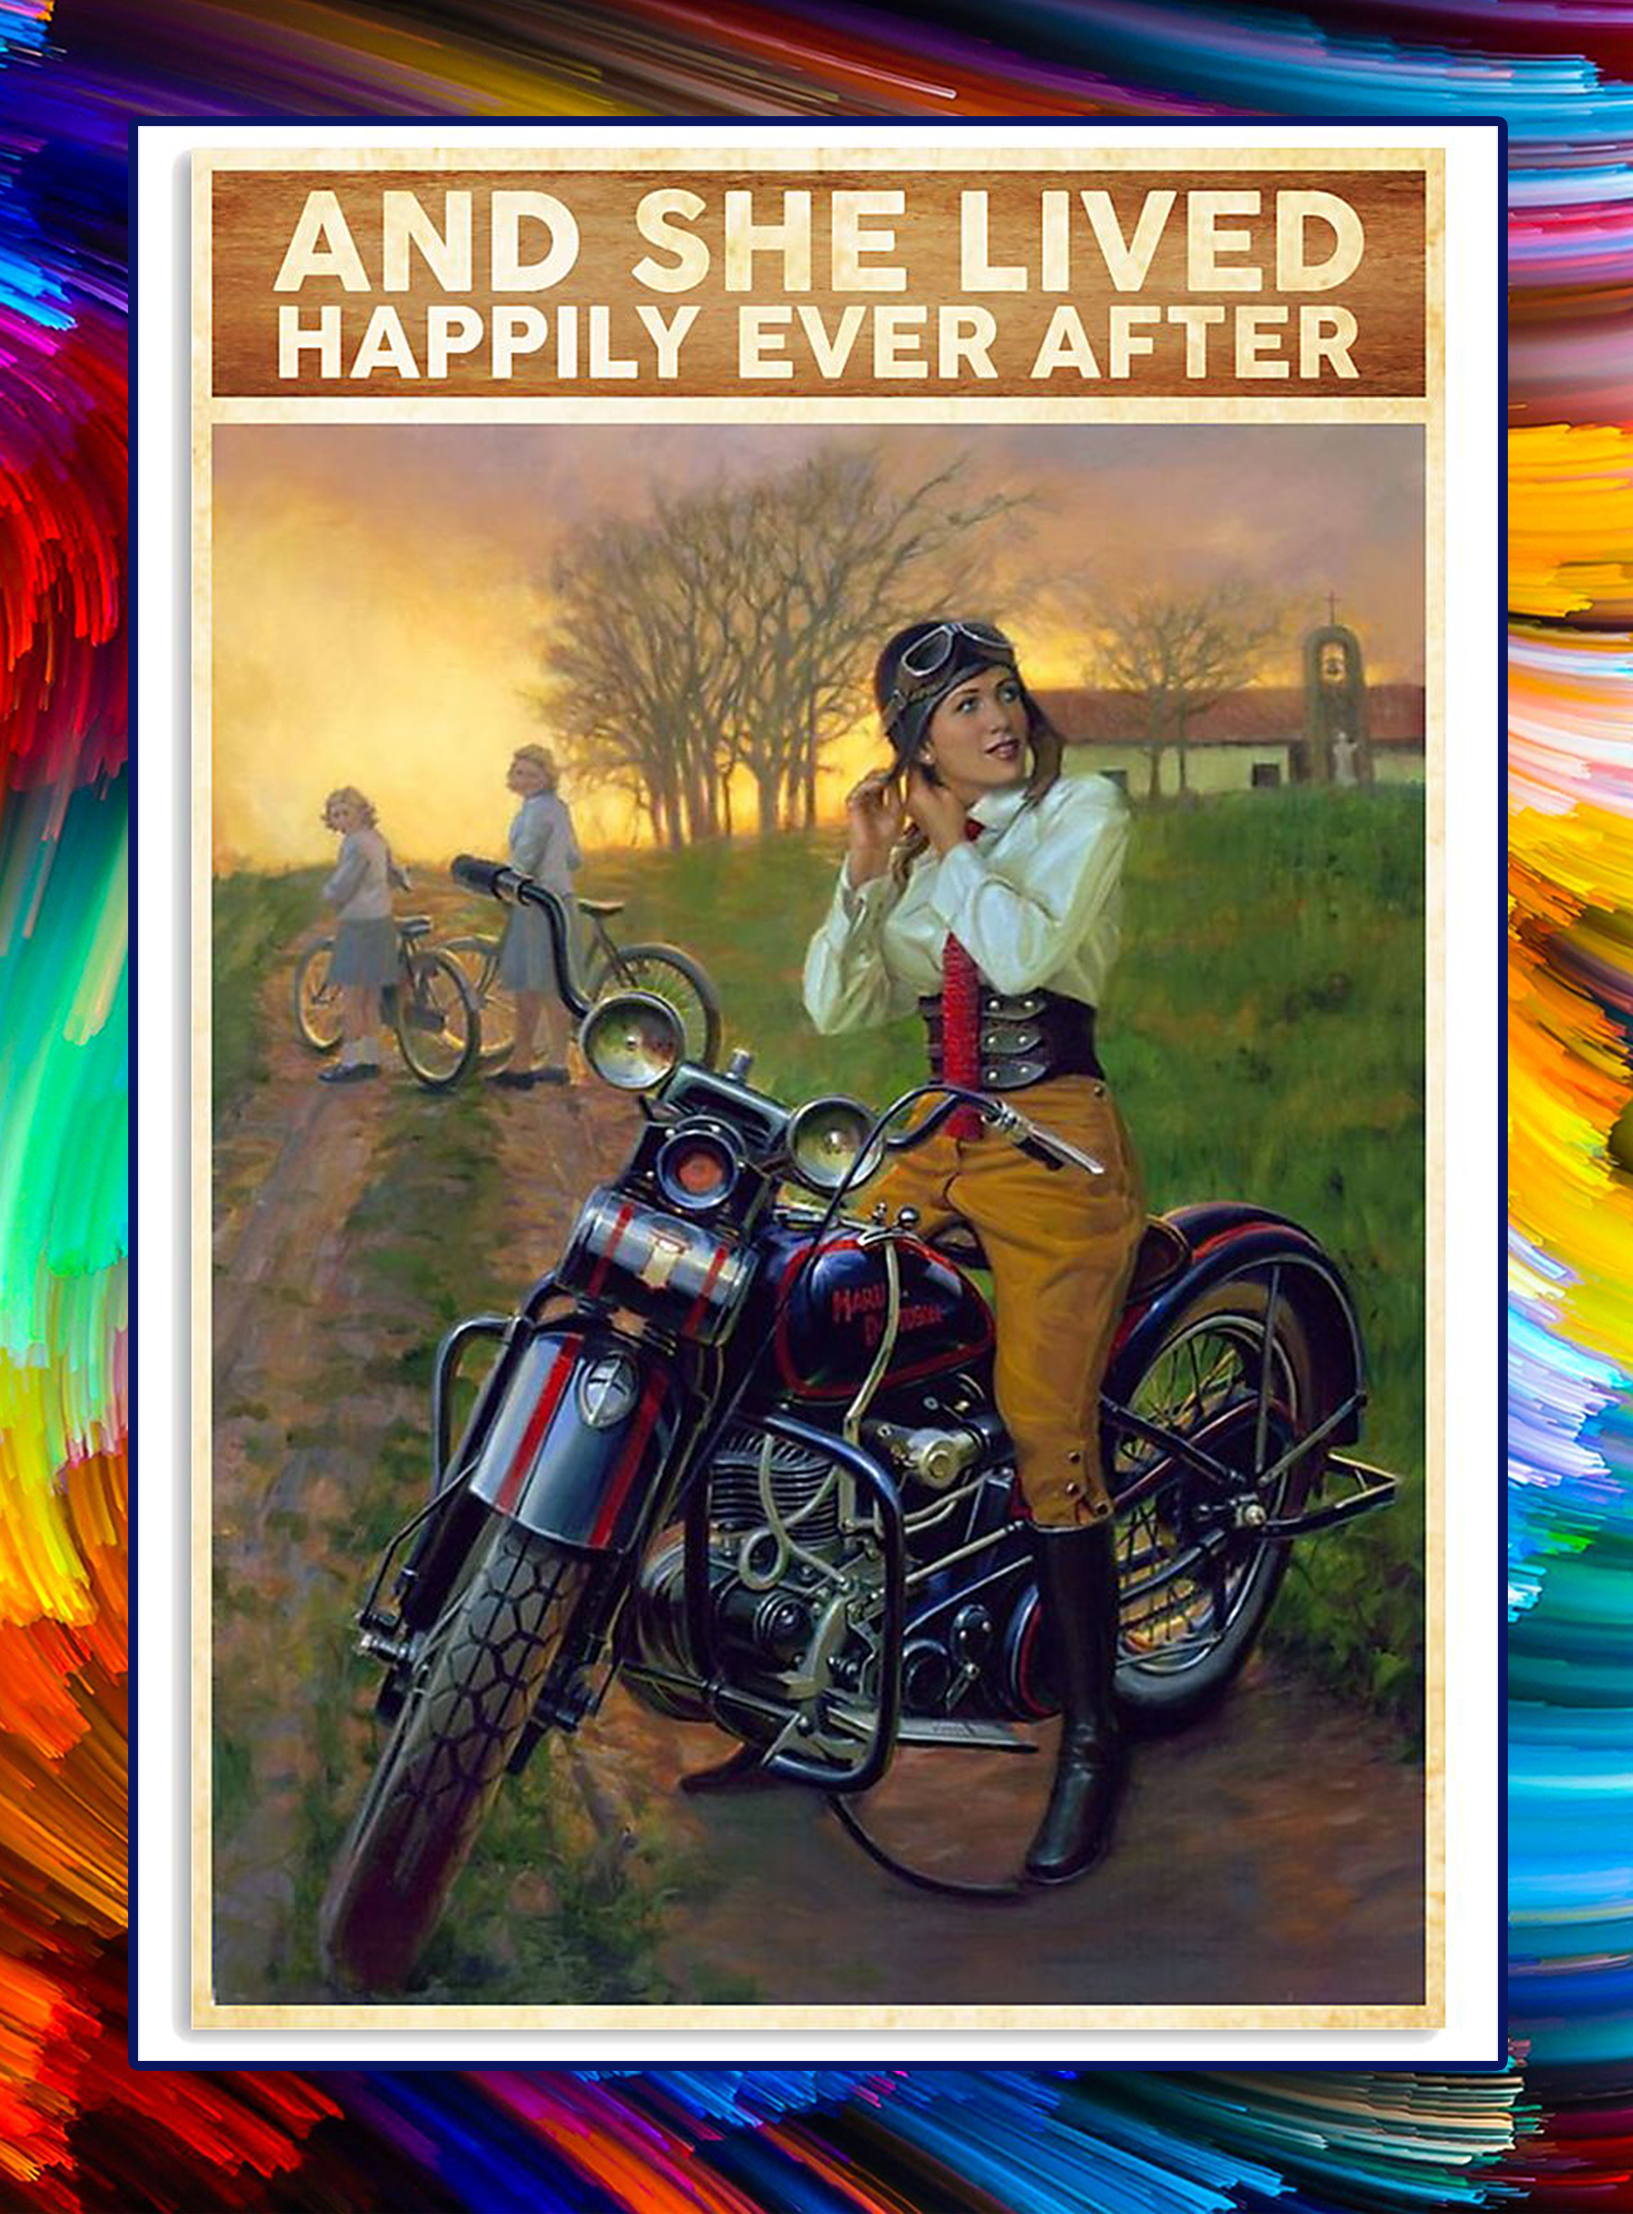 Motorcycle And she lived happily ever after poster - A2